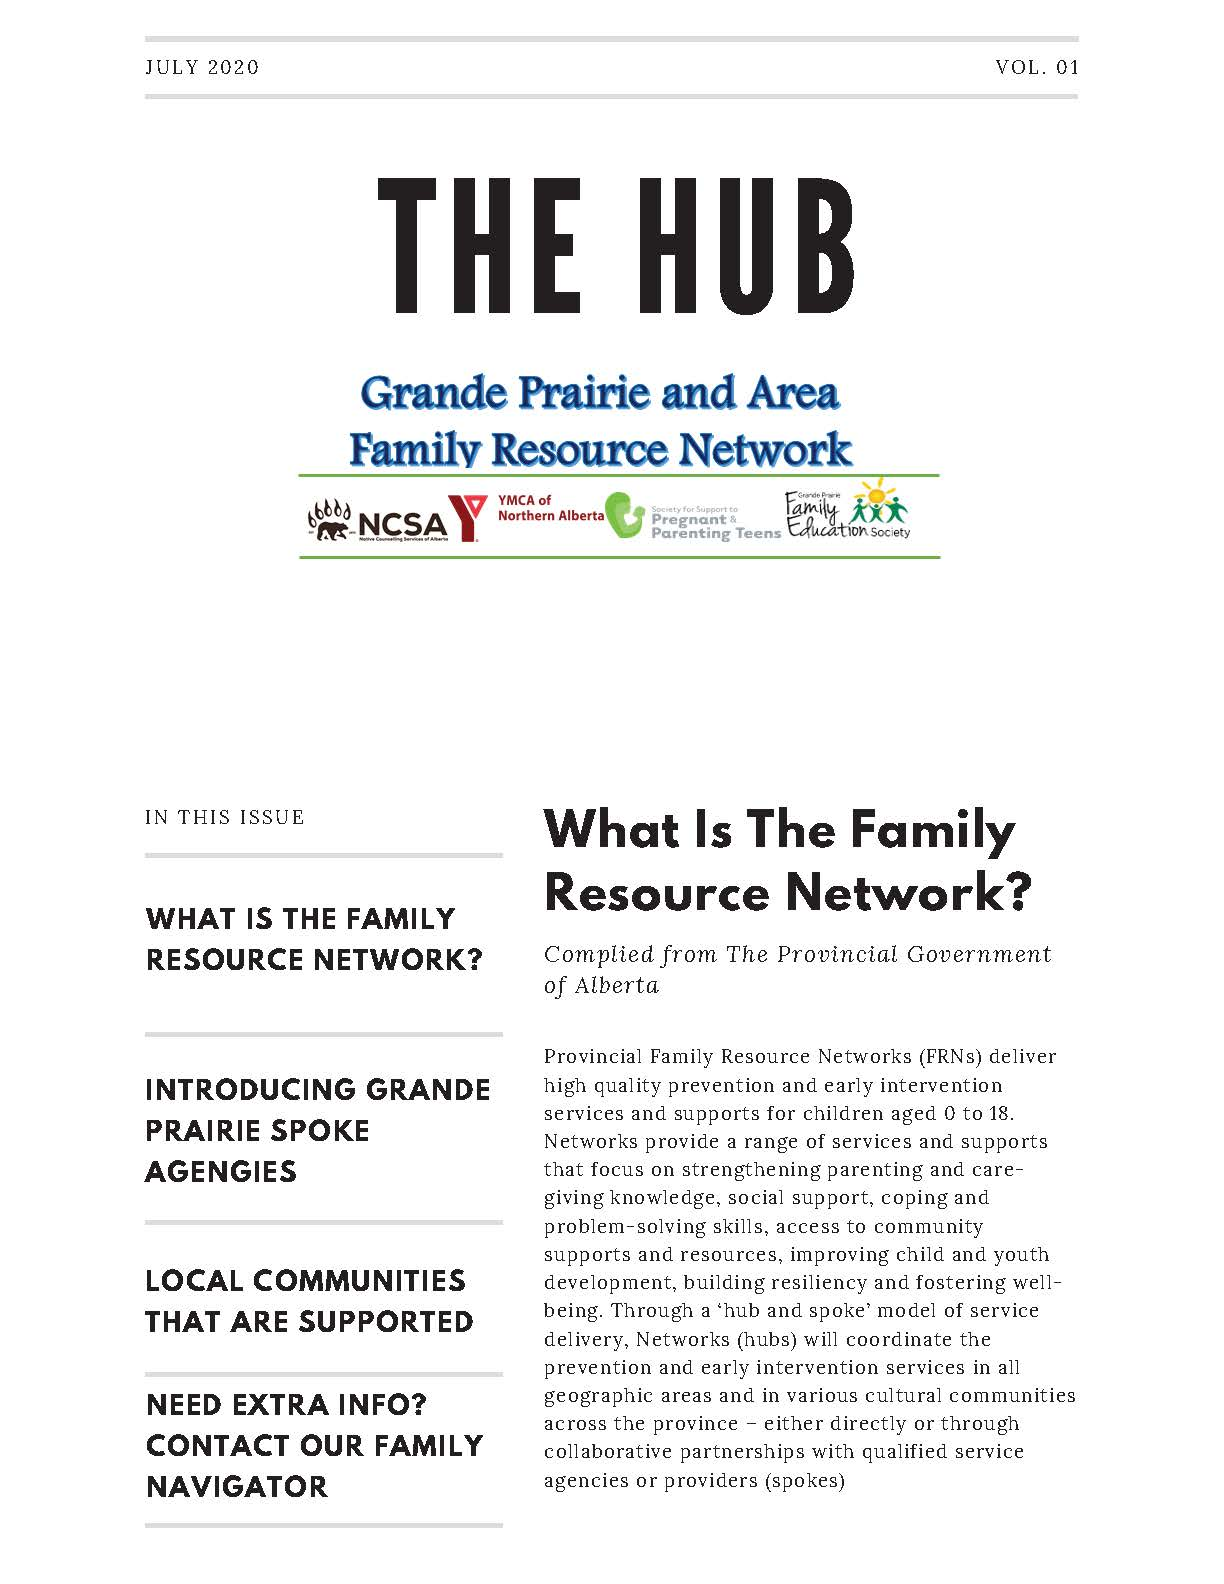 July 2020 Hub Newsletter_Page_1